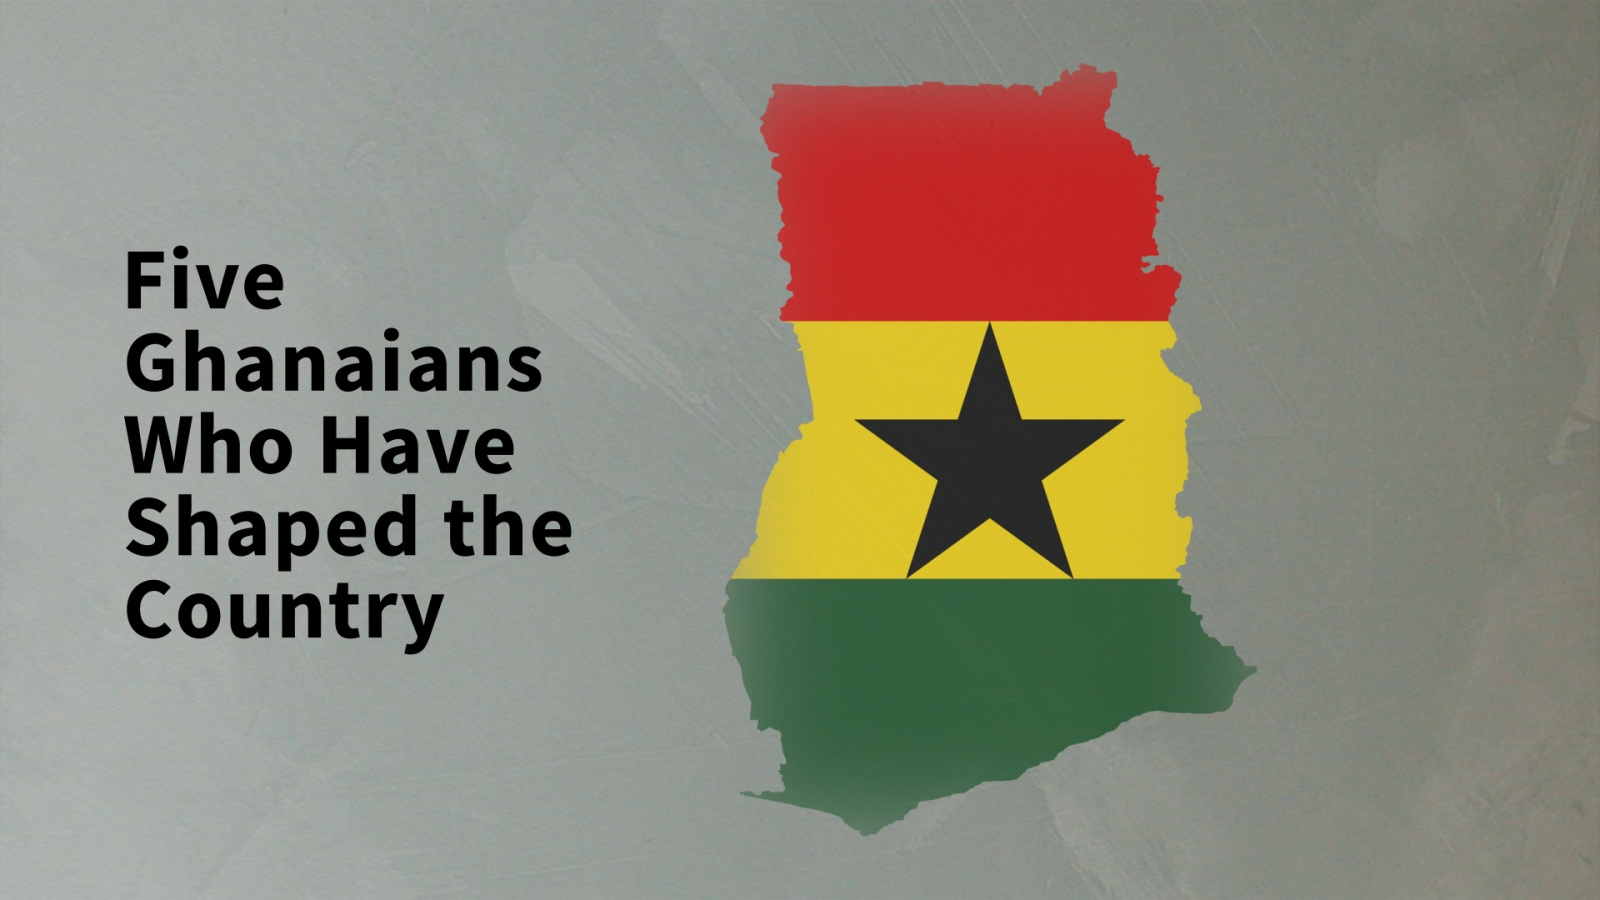 Five Ghanaians who have shaped the country